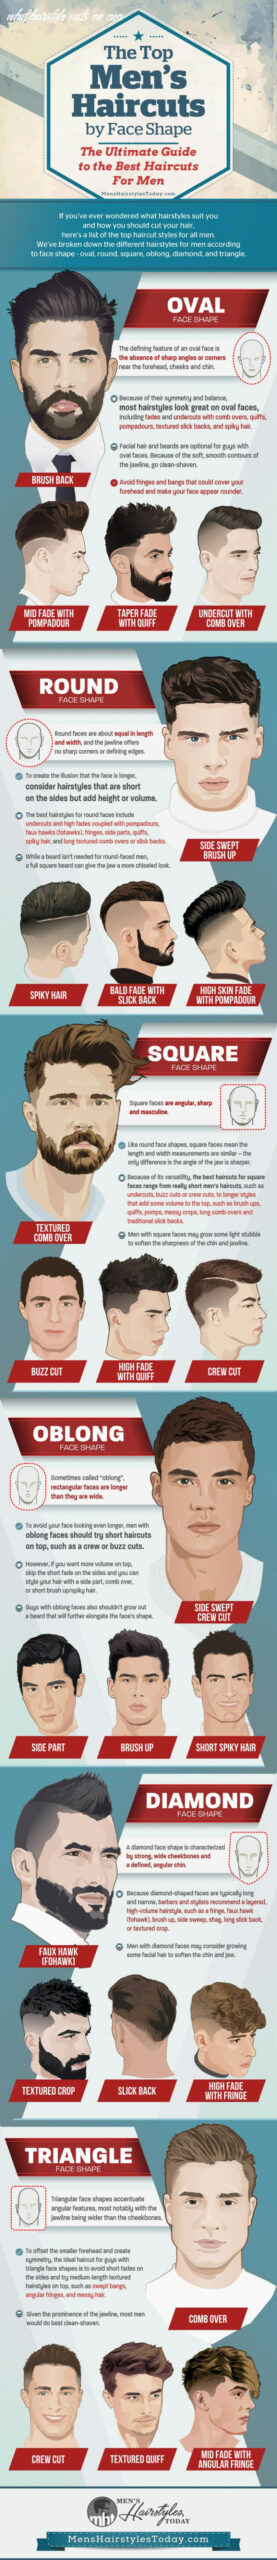 What Haircut Should I Get? (10 Guide)